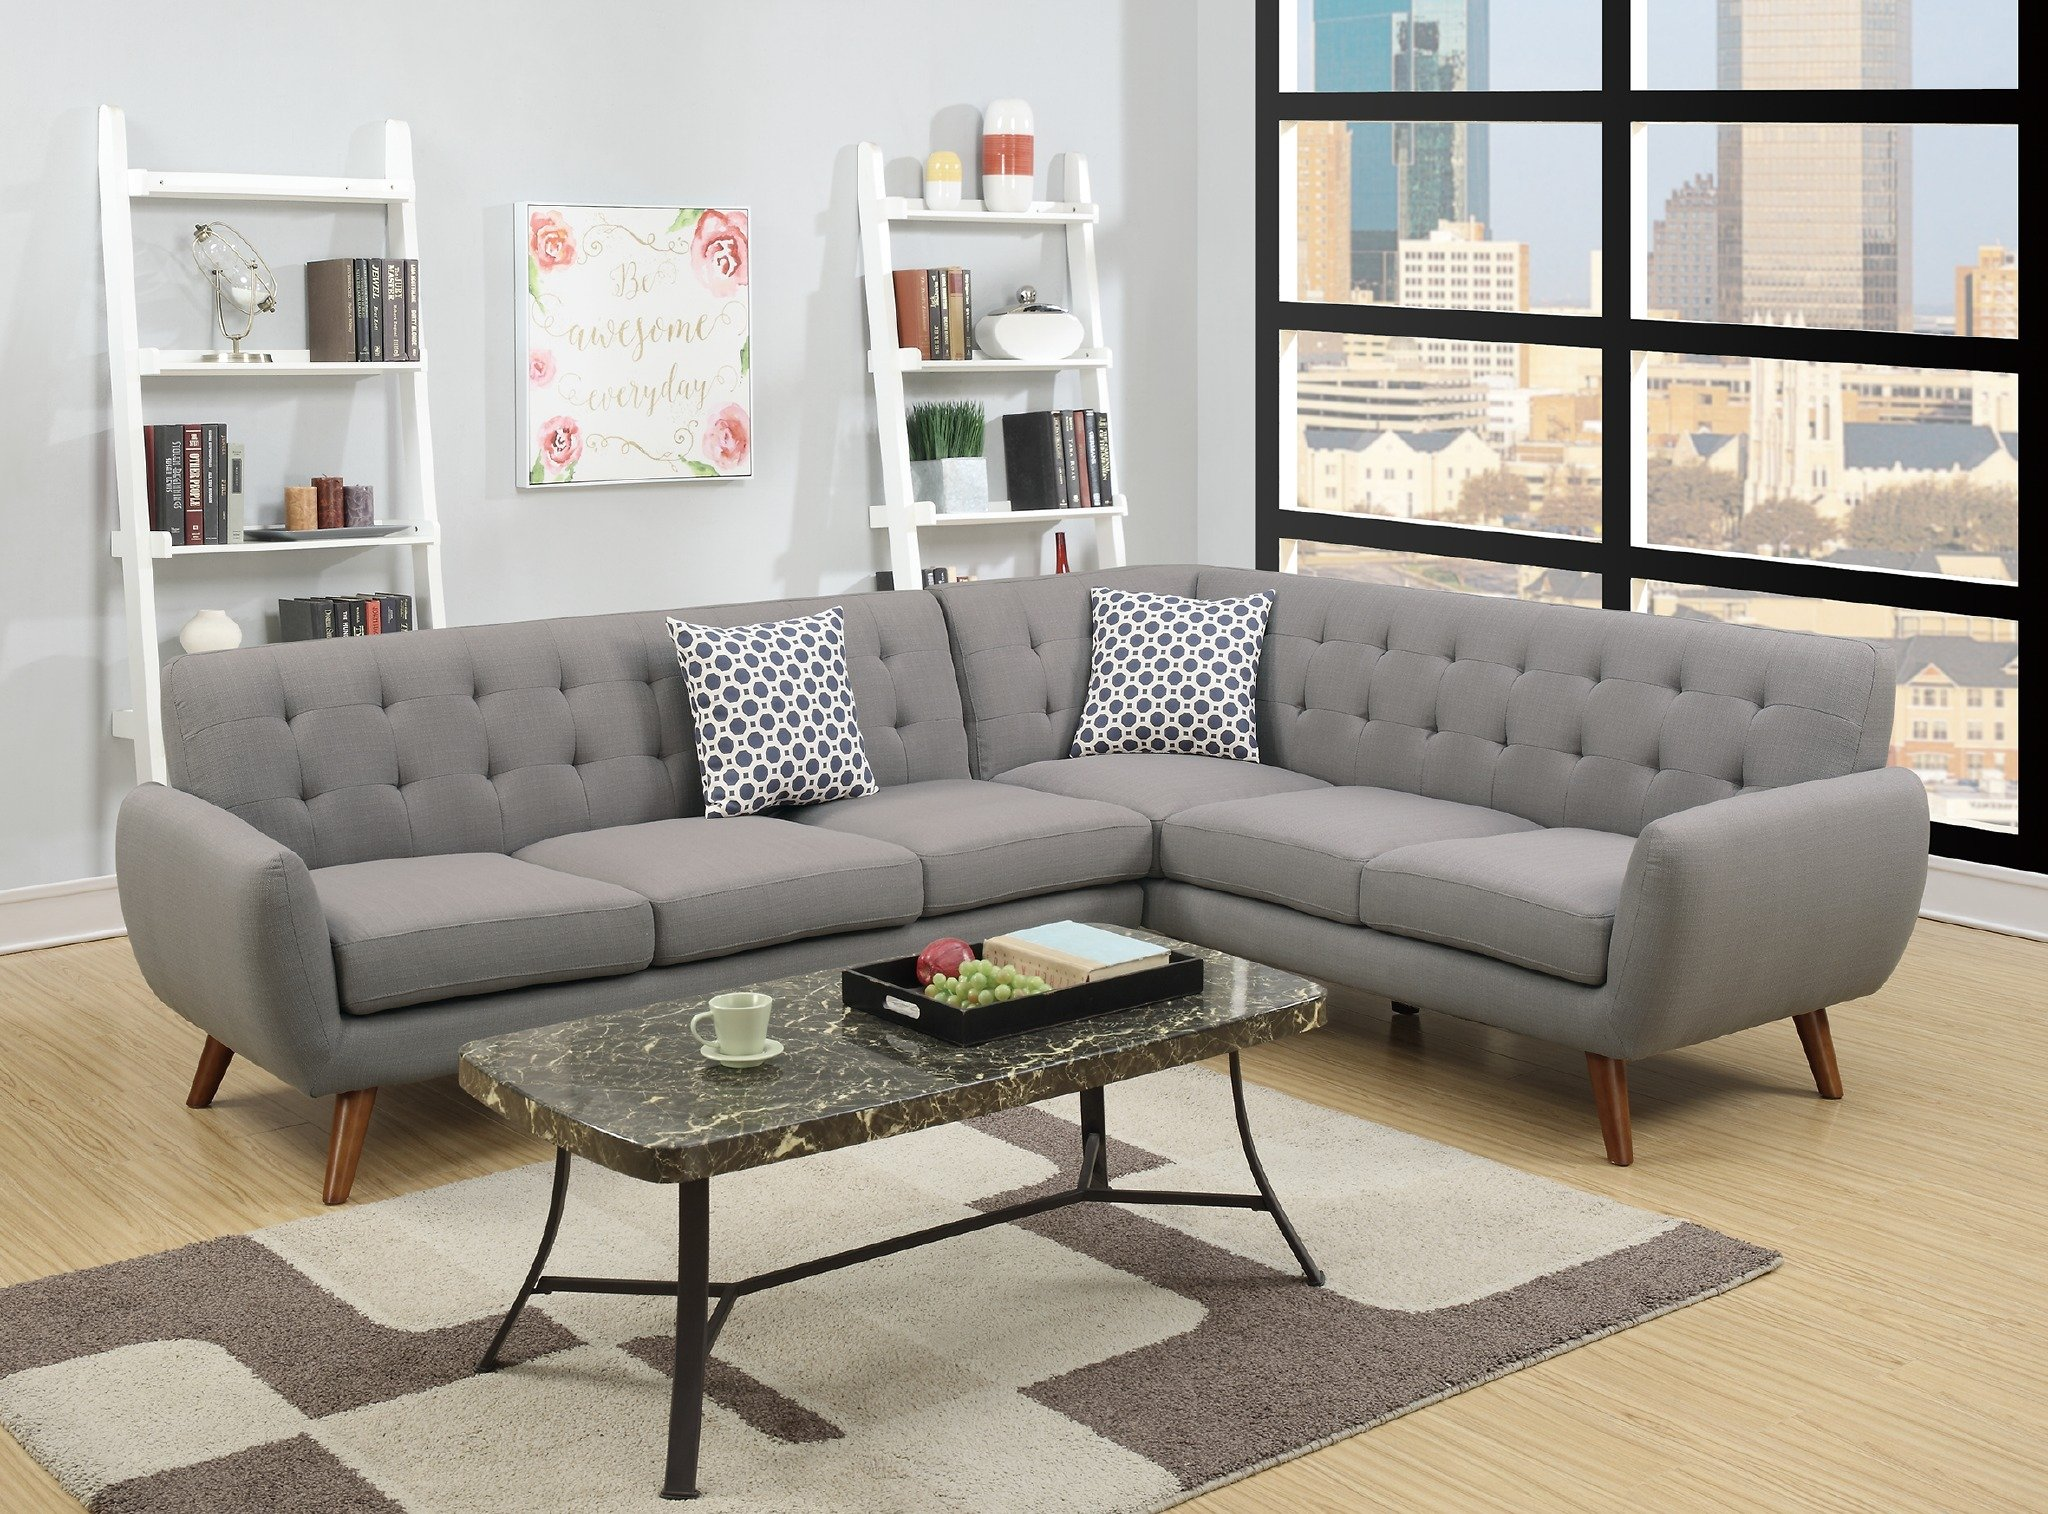 "Modern Retro Sectional Sofa (Gray) - Modern retro styling. Classic yet contemporary design. Upholstered in linen-like Polyfiber fabric. Available in grey, ash black or laguna color. Overall dimension: 111"" x 85"" x 33""H. Loveseat wedge: 85"" x 35"" x 33""H; Sofa: 76"" x 35"" x 33"" - sofas-couches, living-room-furniture, living-room - 91in19UXQaL -"